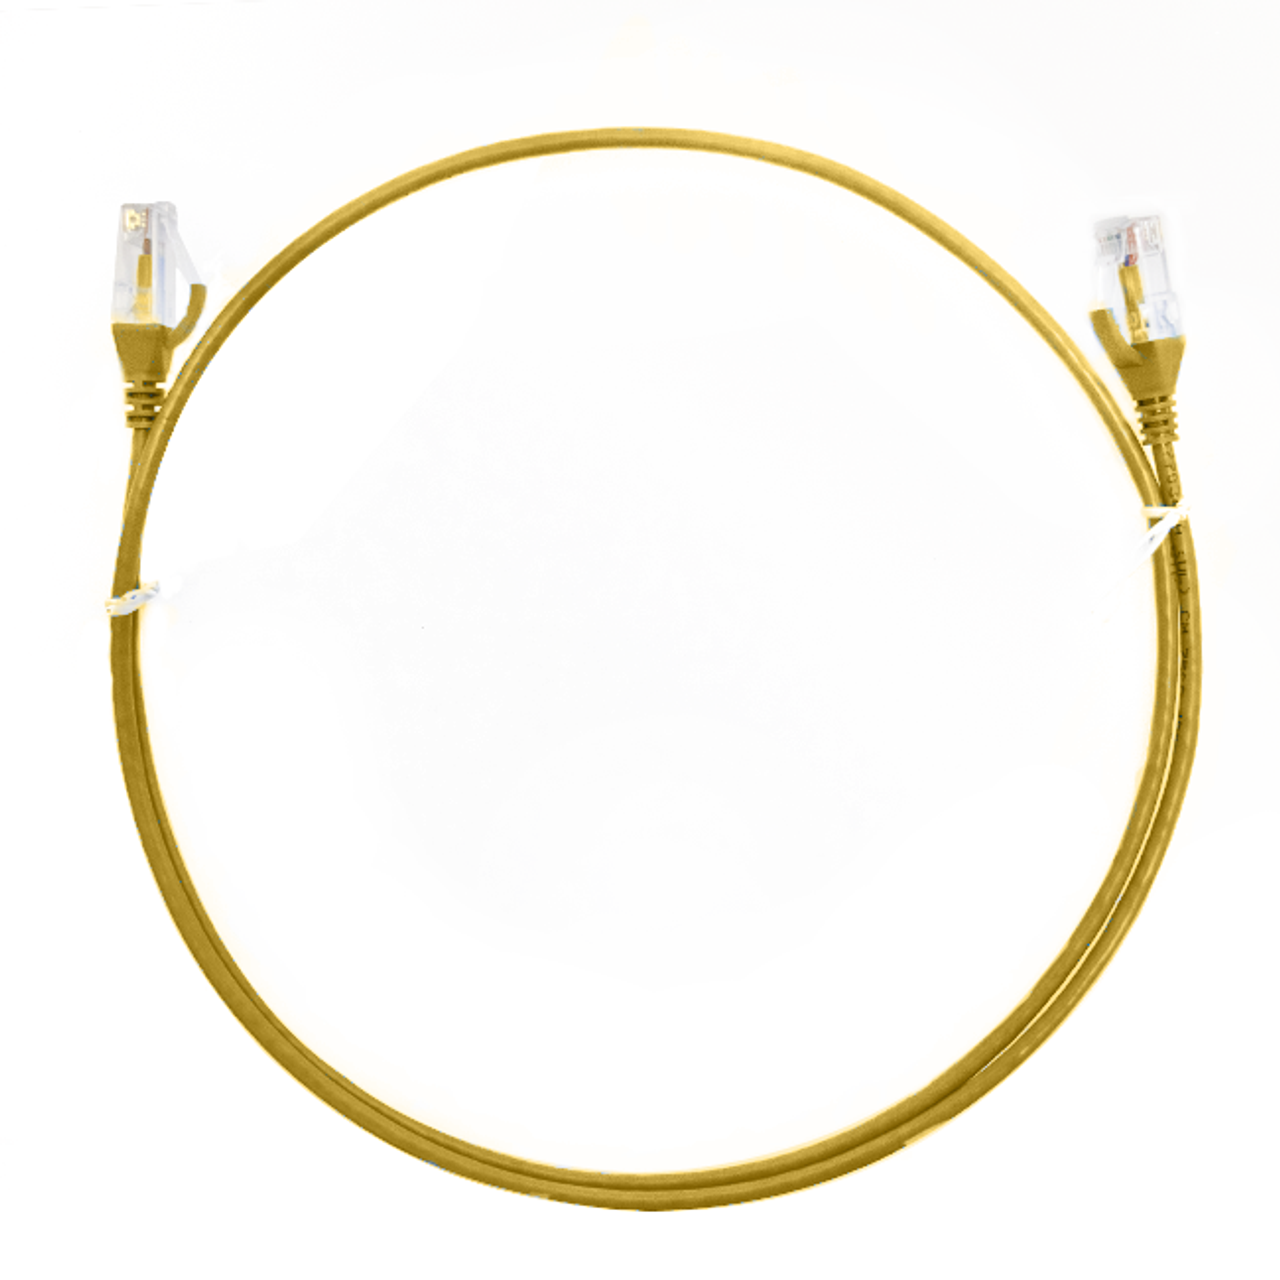 Image for 2m Cat 6 Ultra Thin LSZH Ethernet Network Cables: Yellow CX Computer Superstore